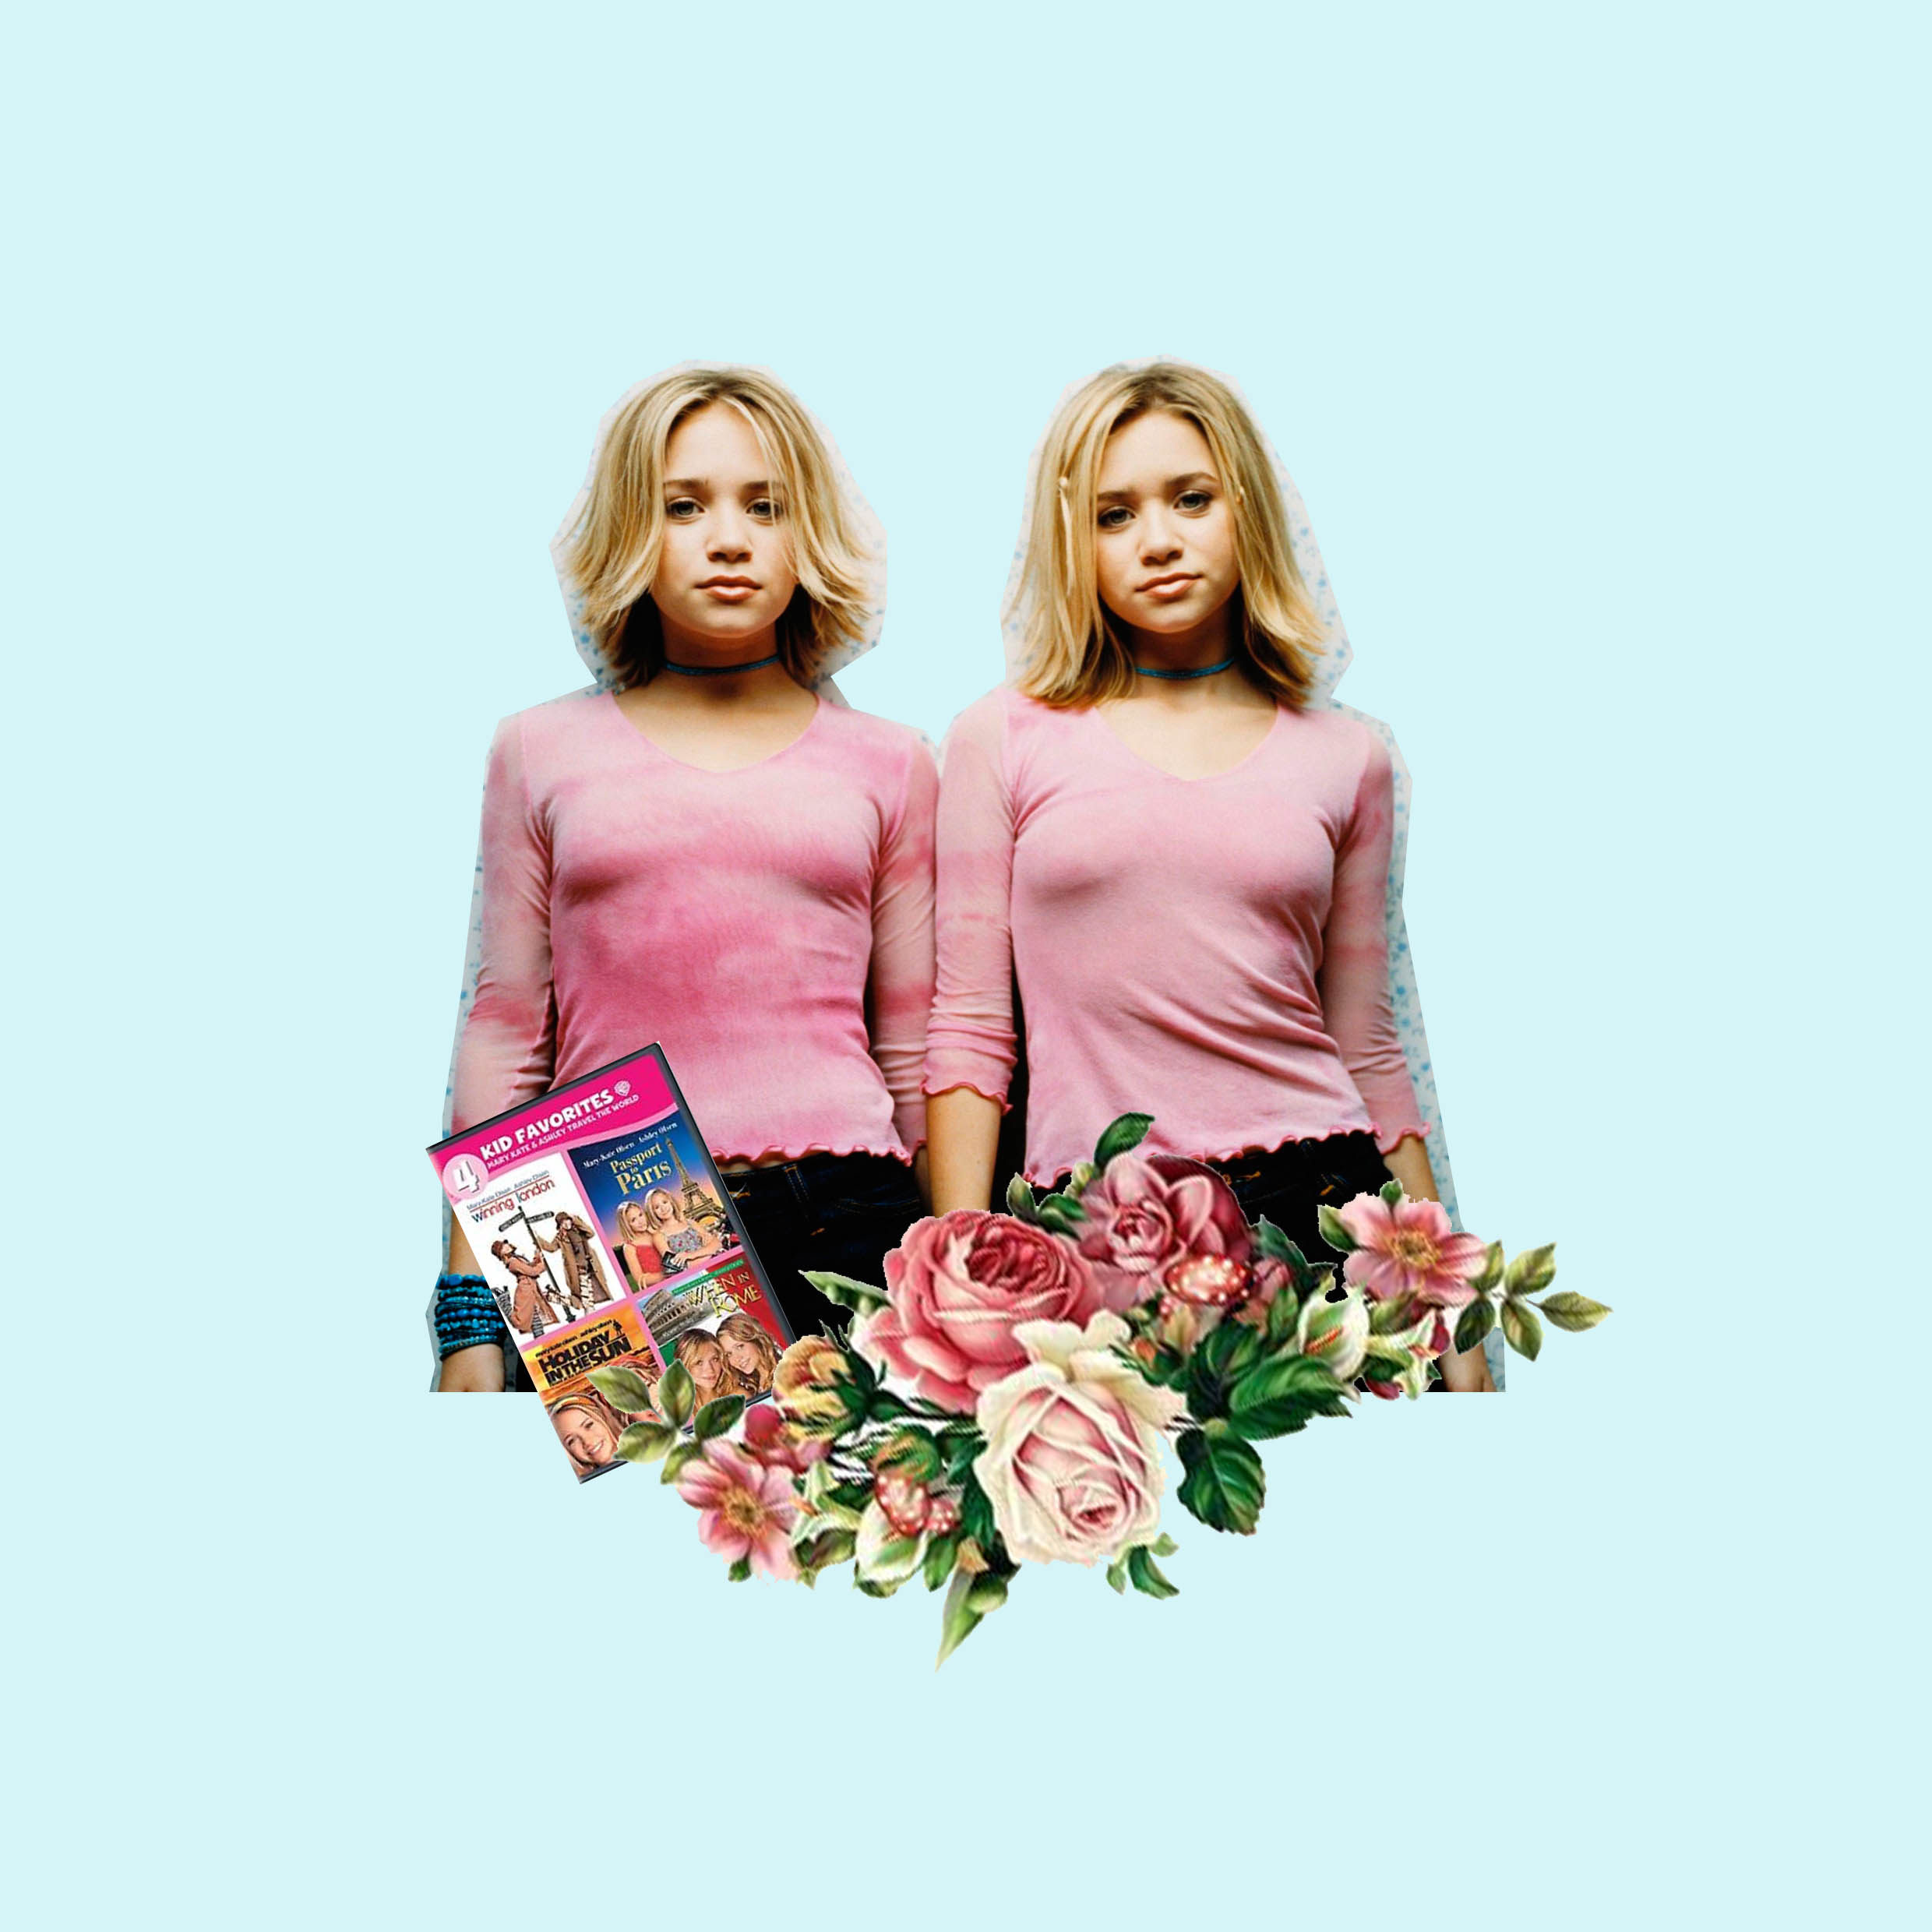 ICONIC DUO - Nobody made matching outfits look better, so hands up if the Olsen's had you wishing for a twin? There's not a film I haven't seen and New York Minute was a huge cinematic event in my time. So cute, so fun - so 2000's.